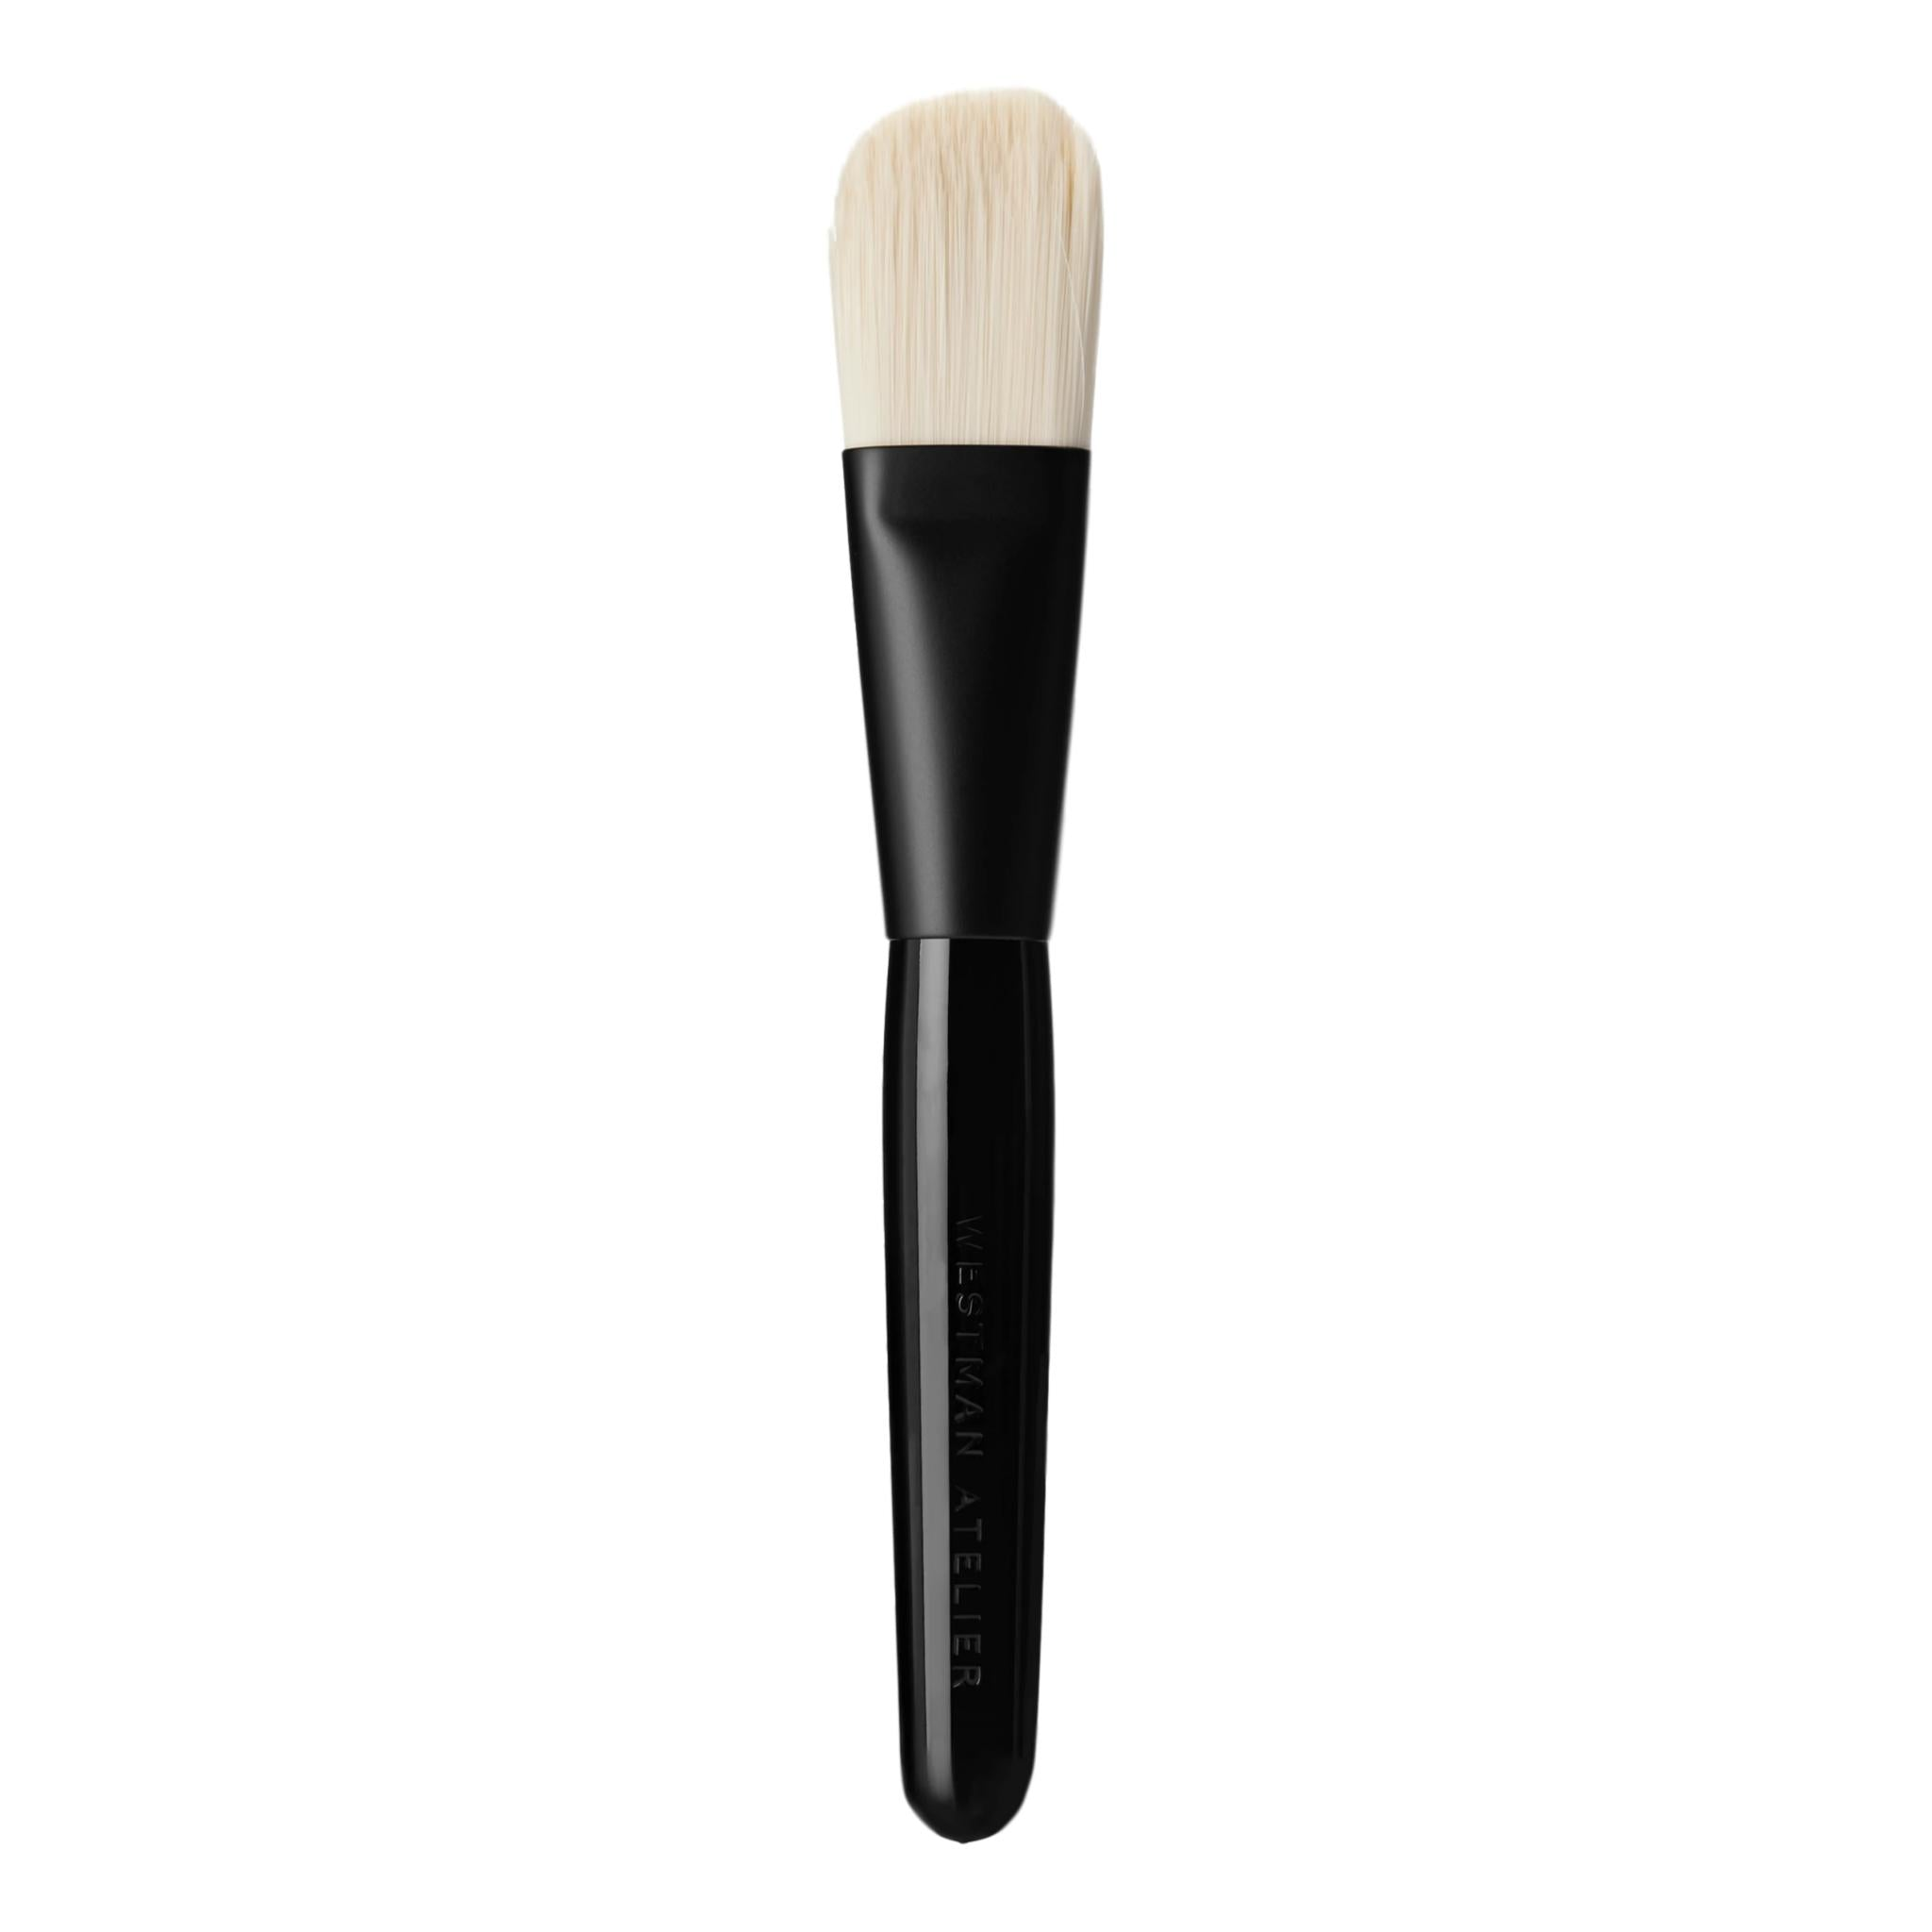 Westman Atelier Foundation Brush, foundation brush, London Loves Beauty